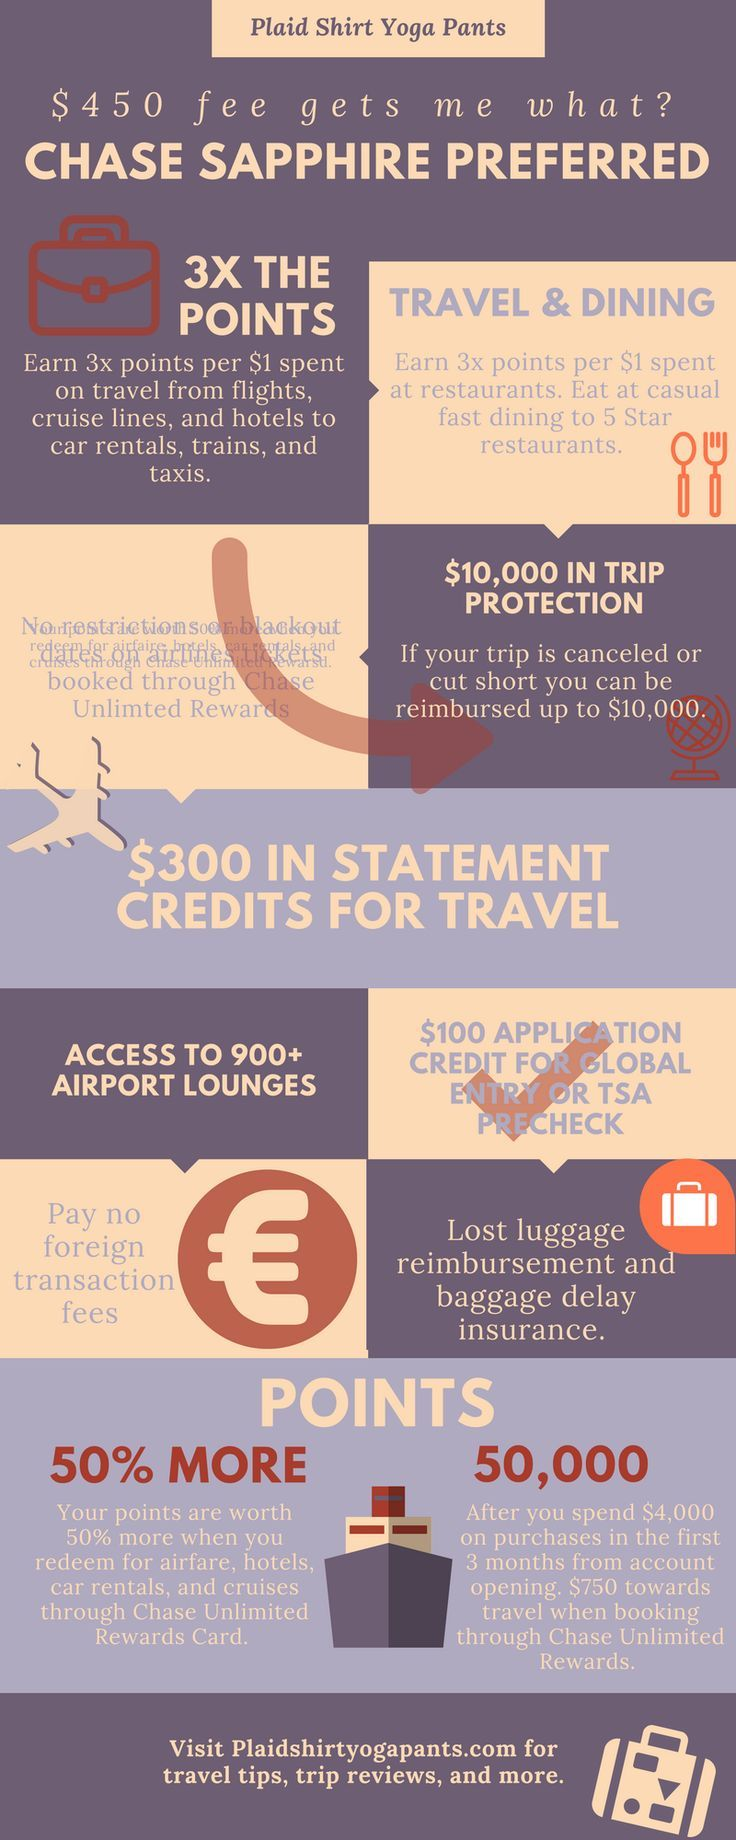 $450 for a Travel Credit Card? Are you Insane? Yes | Free travel ...